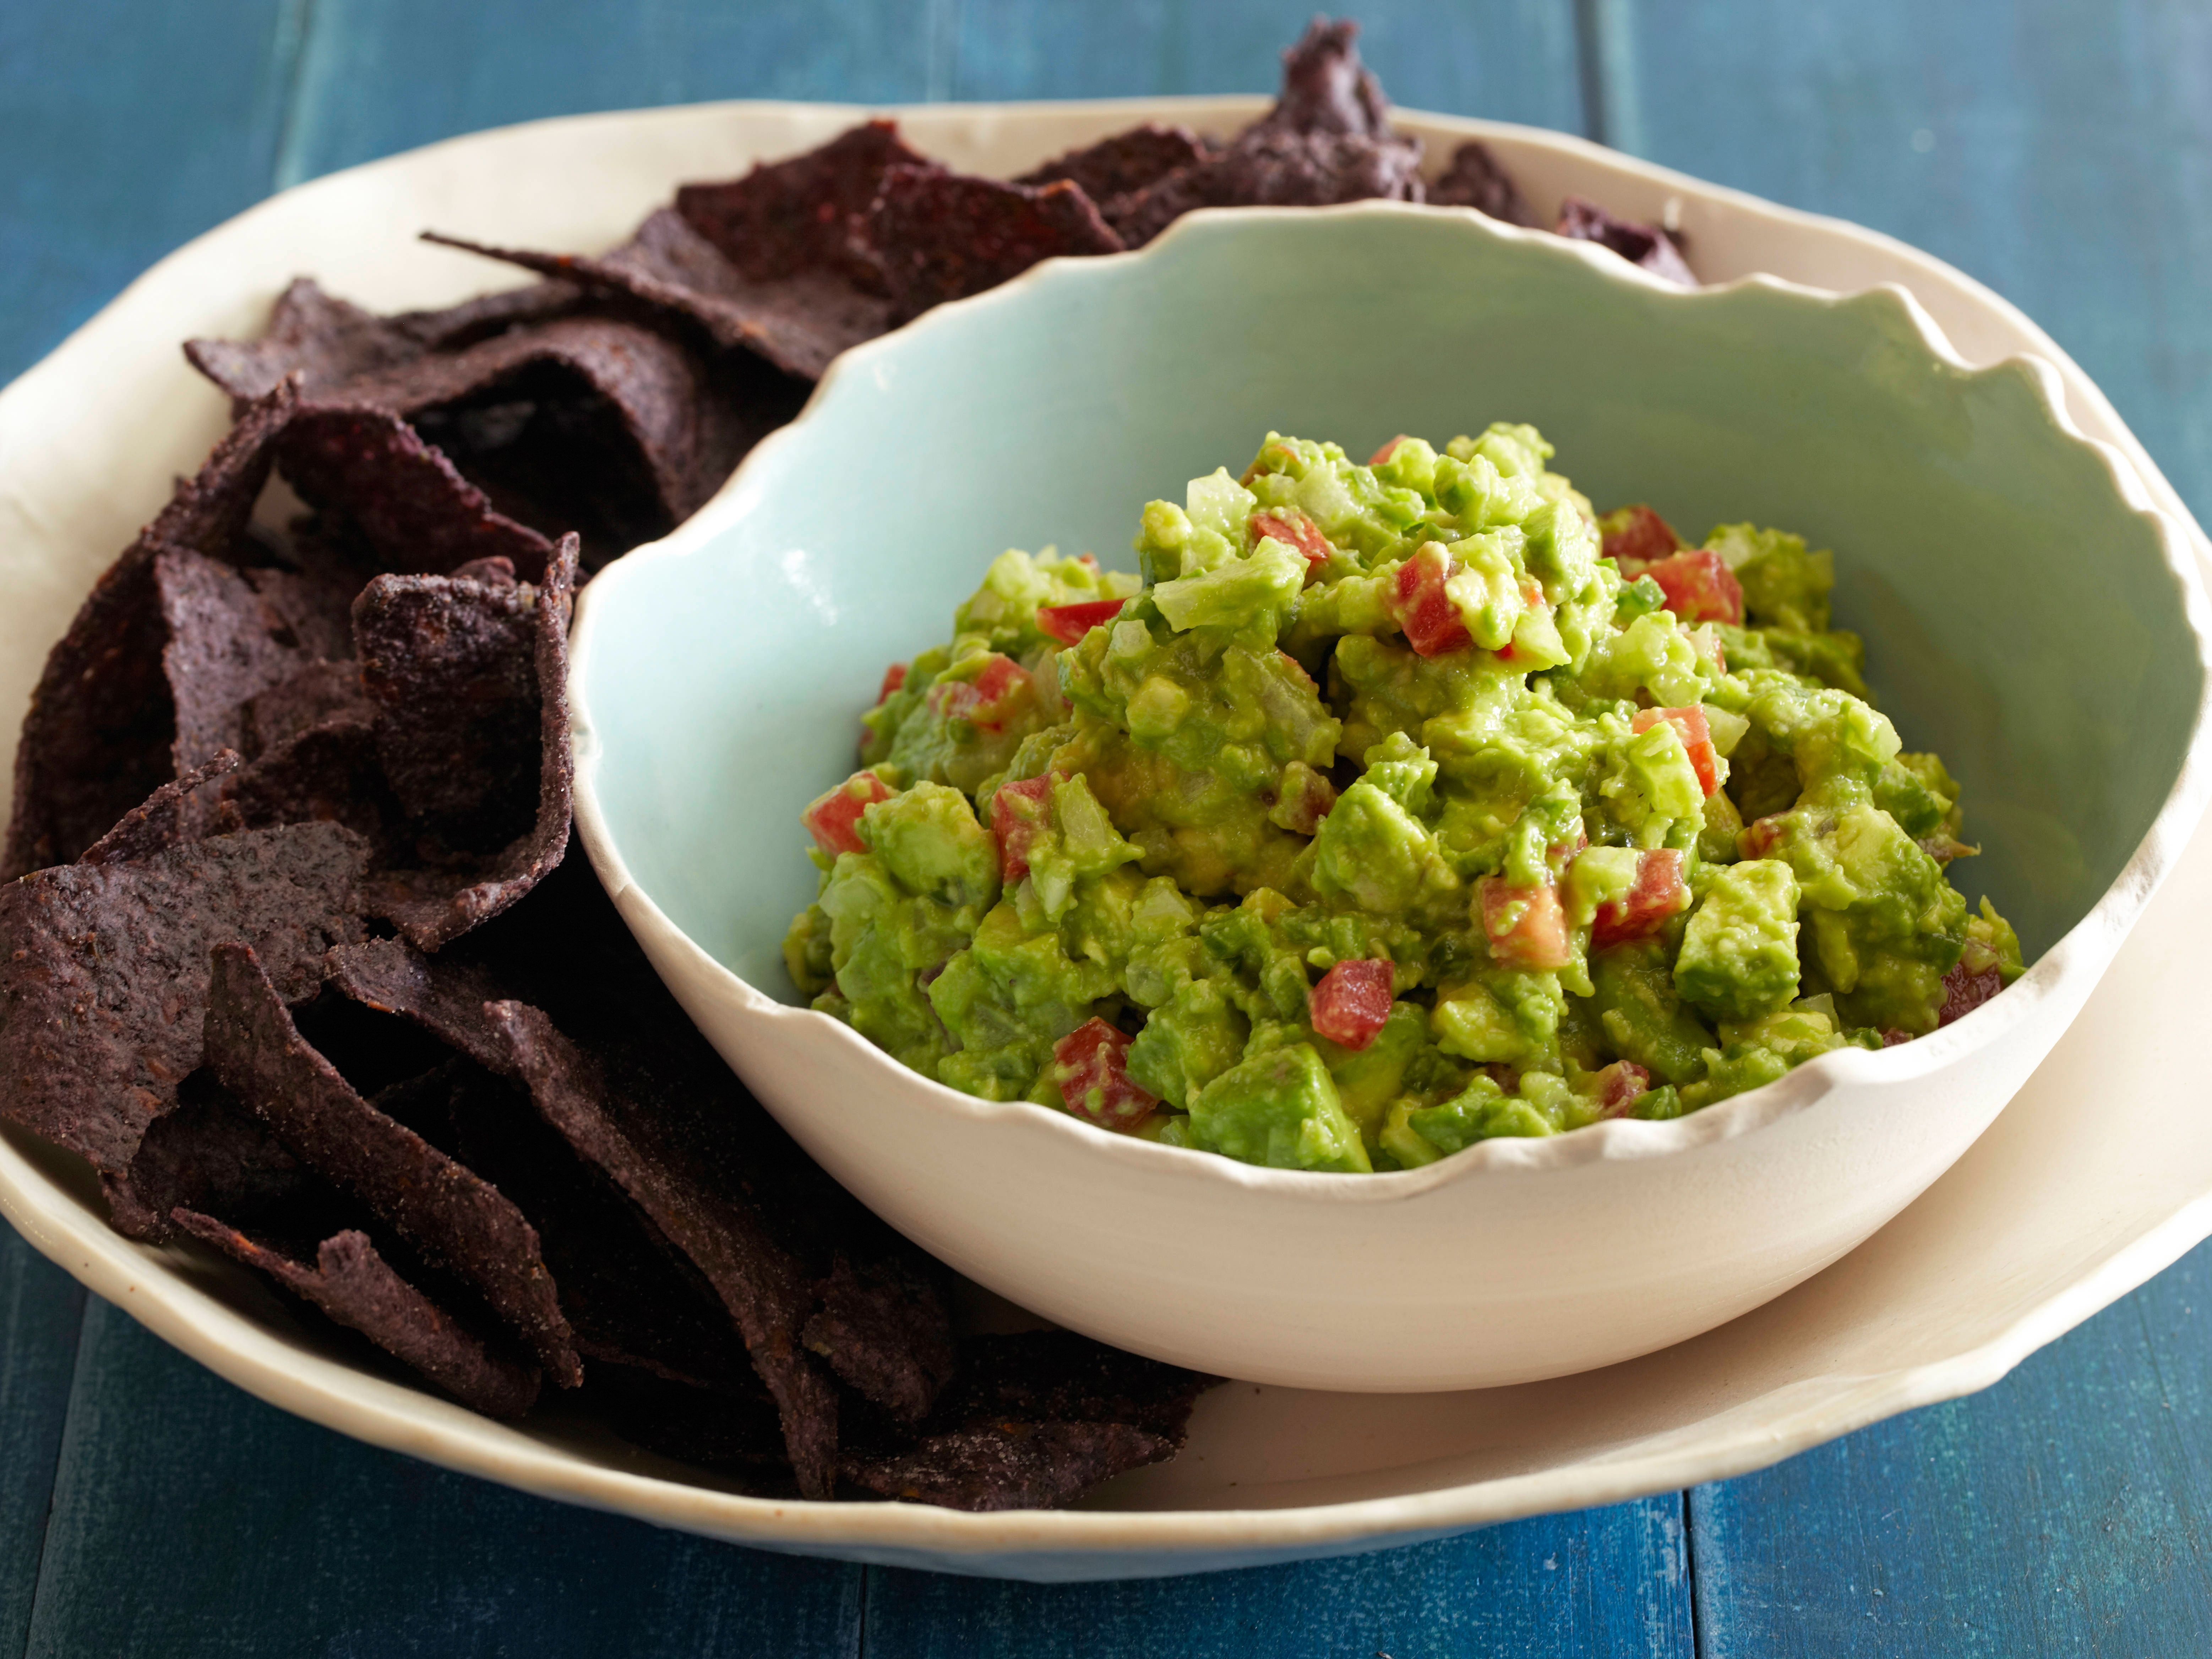 Garlicky holy guacamole recipe holy guacamole guacamole garlicky holy guacamole recipe holy guacamole guacamole recipe and recipes forumfinder Image collections